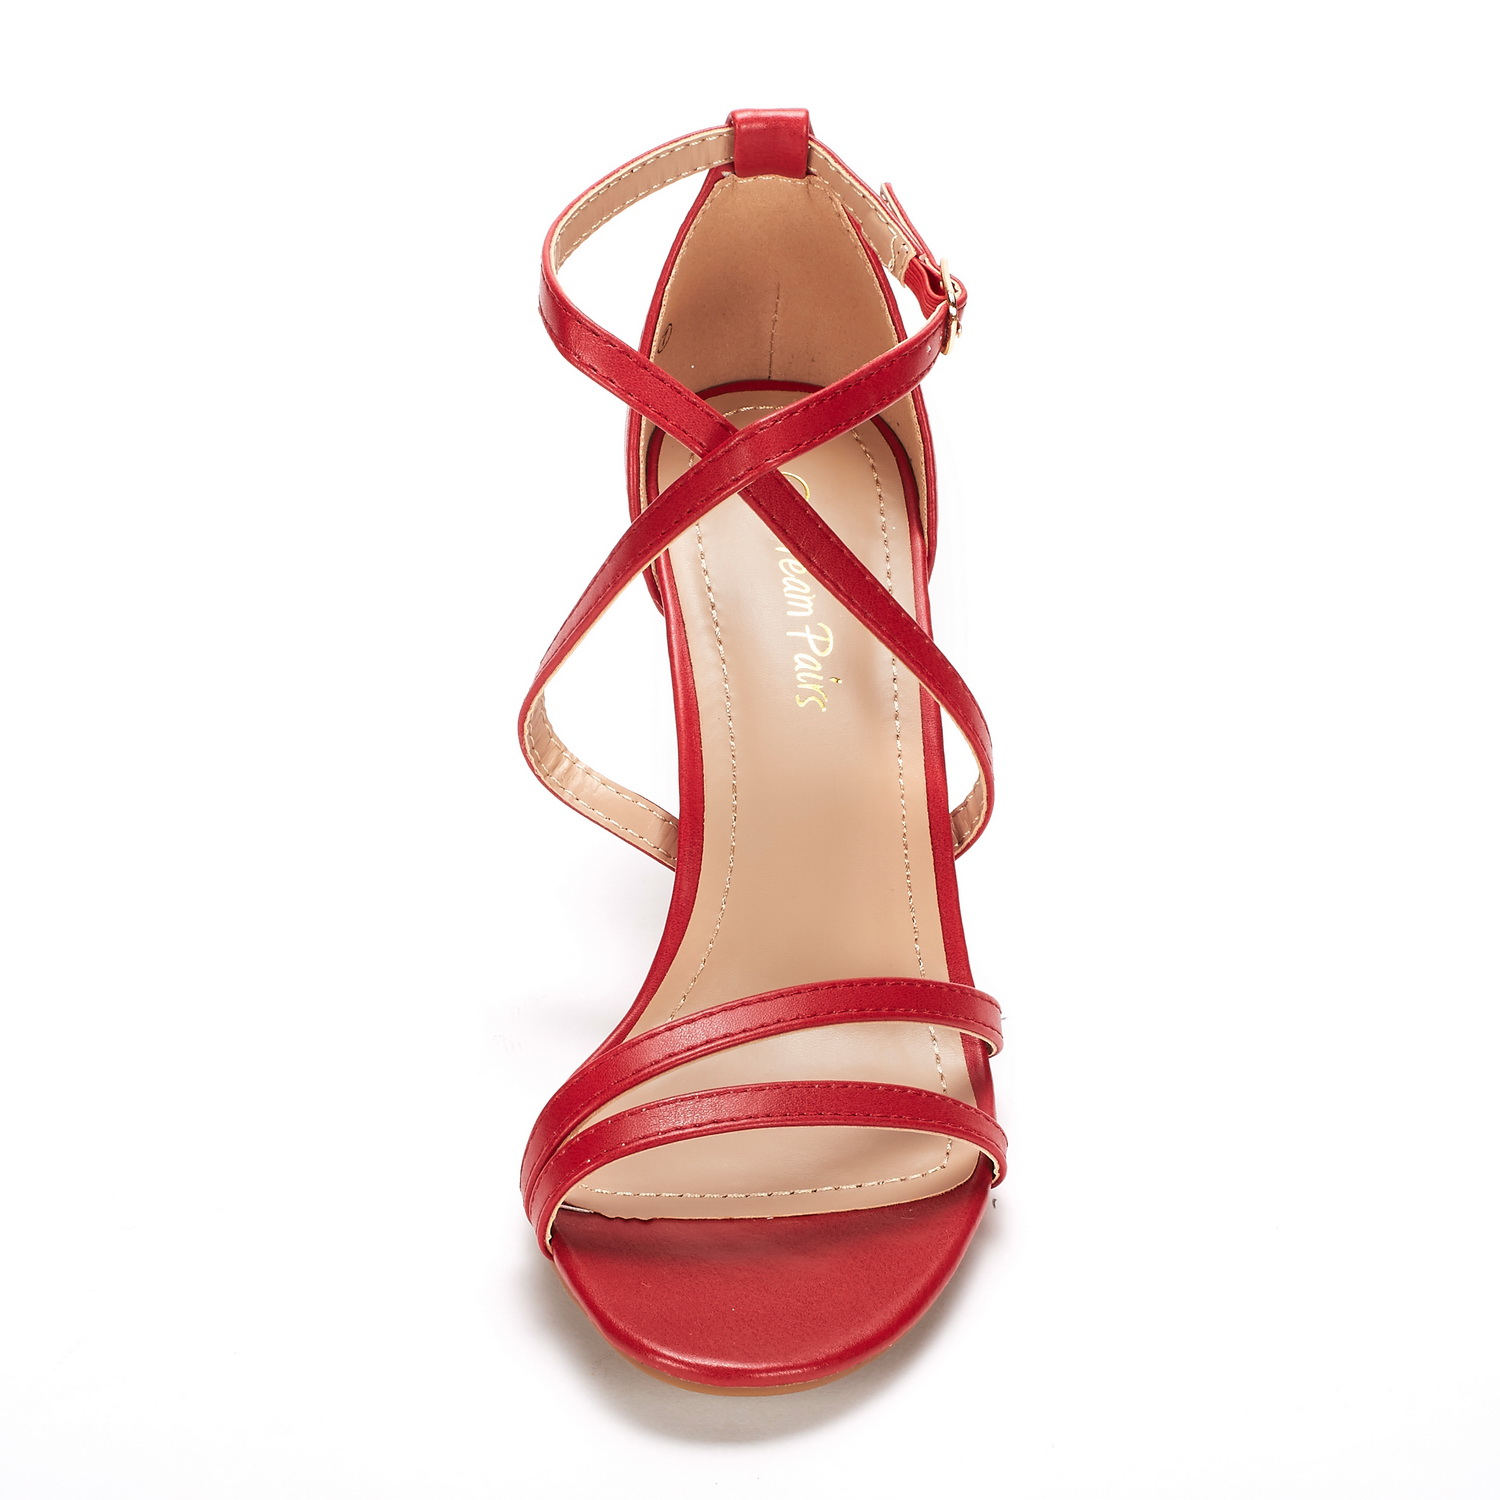 DREAM-PAIRS-Women-039-s-Ankle-Strap-High-Heel-Sandals-Dress-Shoes-Wedding-Party thumbnail 27